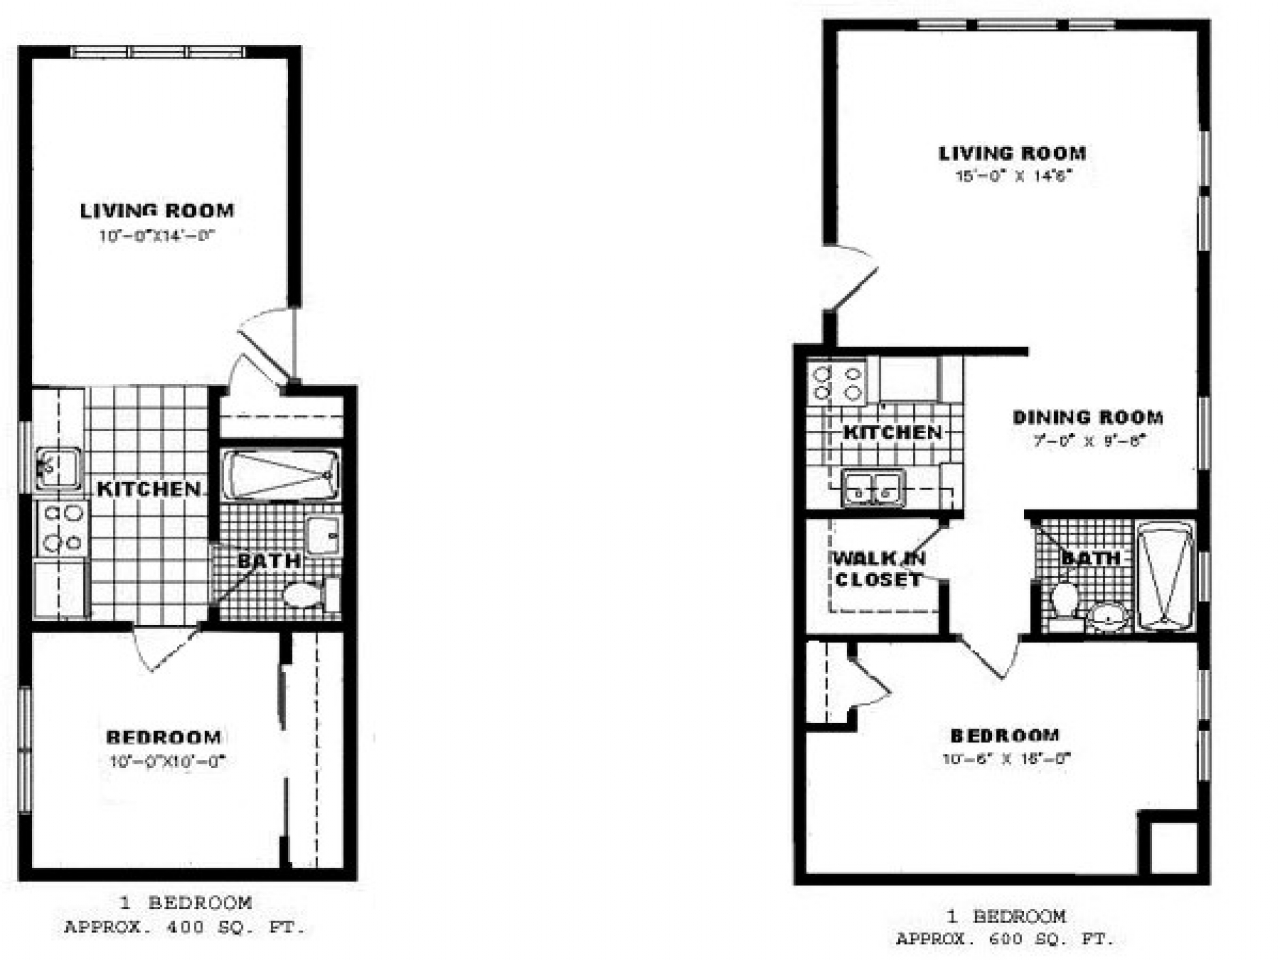 One Bedroom Apartment Floor Plan Apartments For Rent 1 Bedroom House Plans With Basement